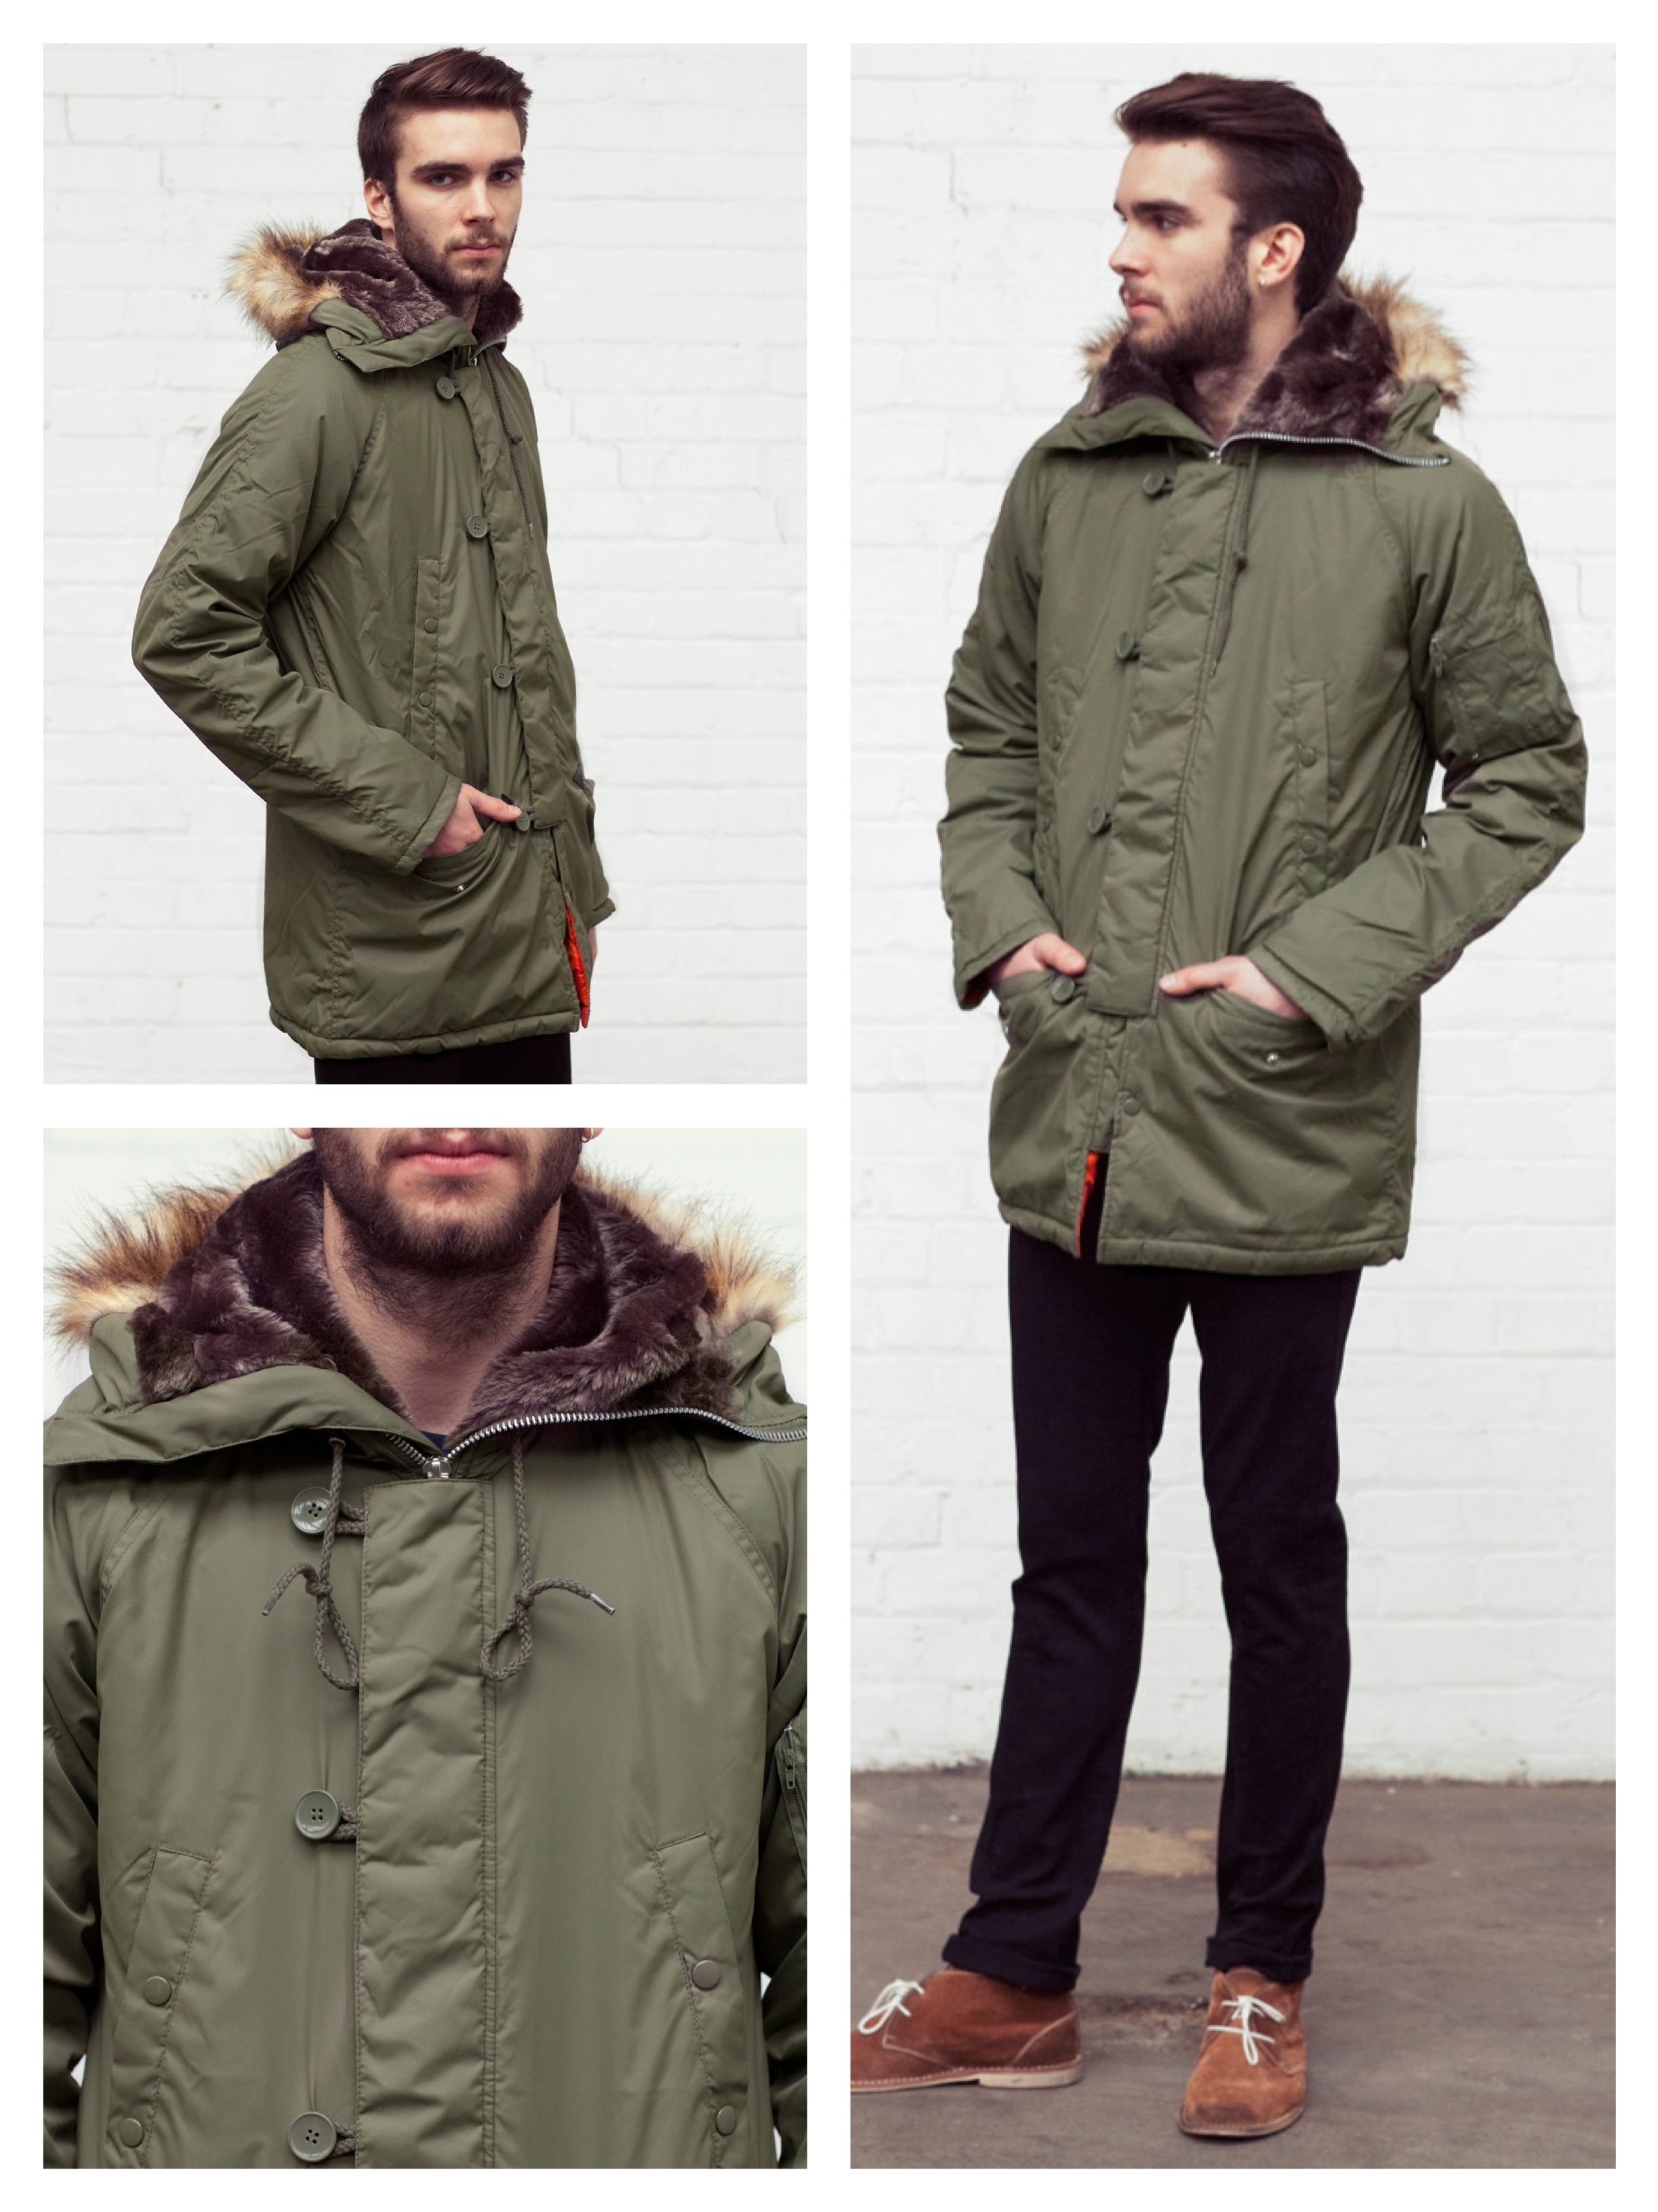 Today's Daily Fix: Old School Parka Green    £50    http://www.phixclothing.com/school-parka-green-p-3456_7_8.html